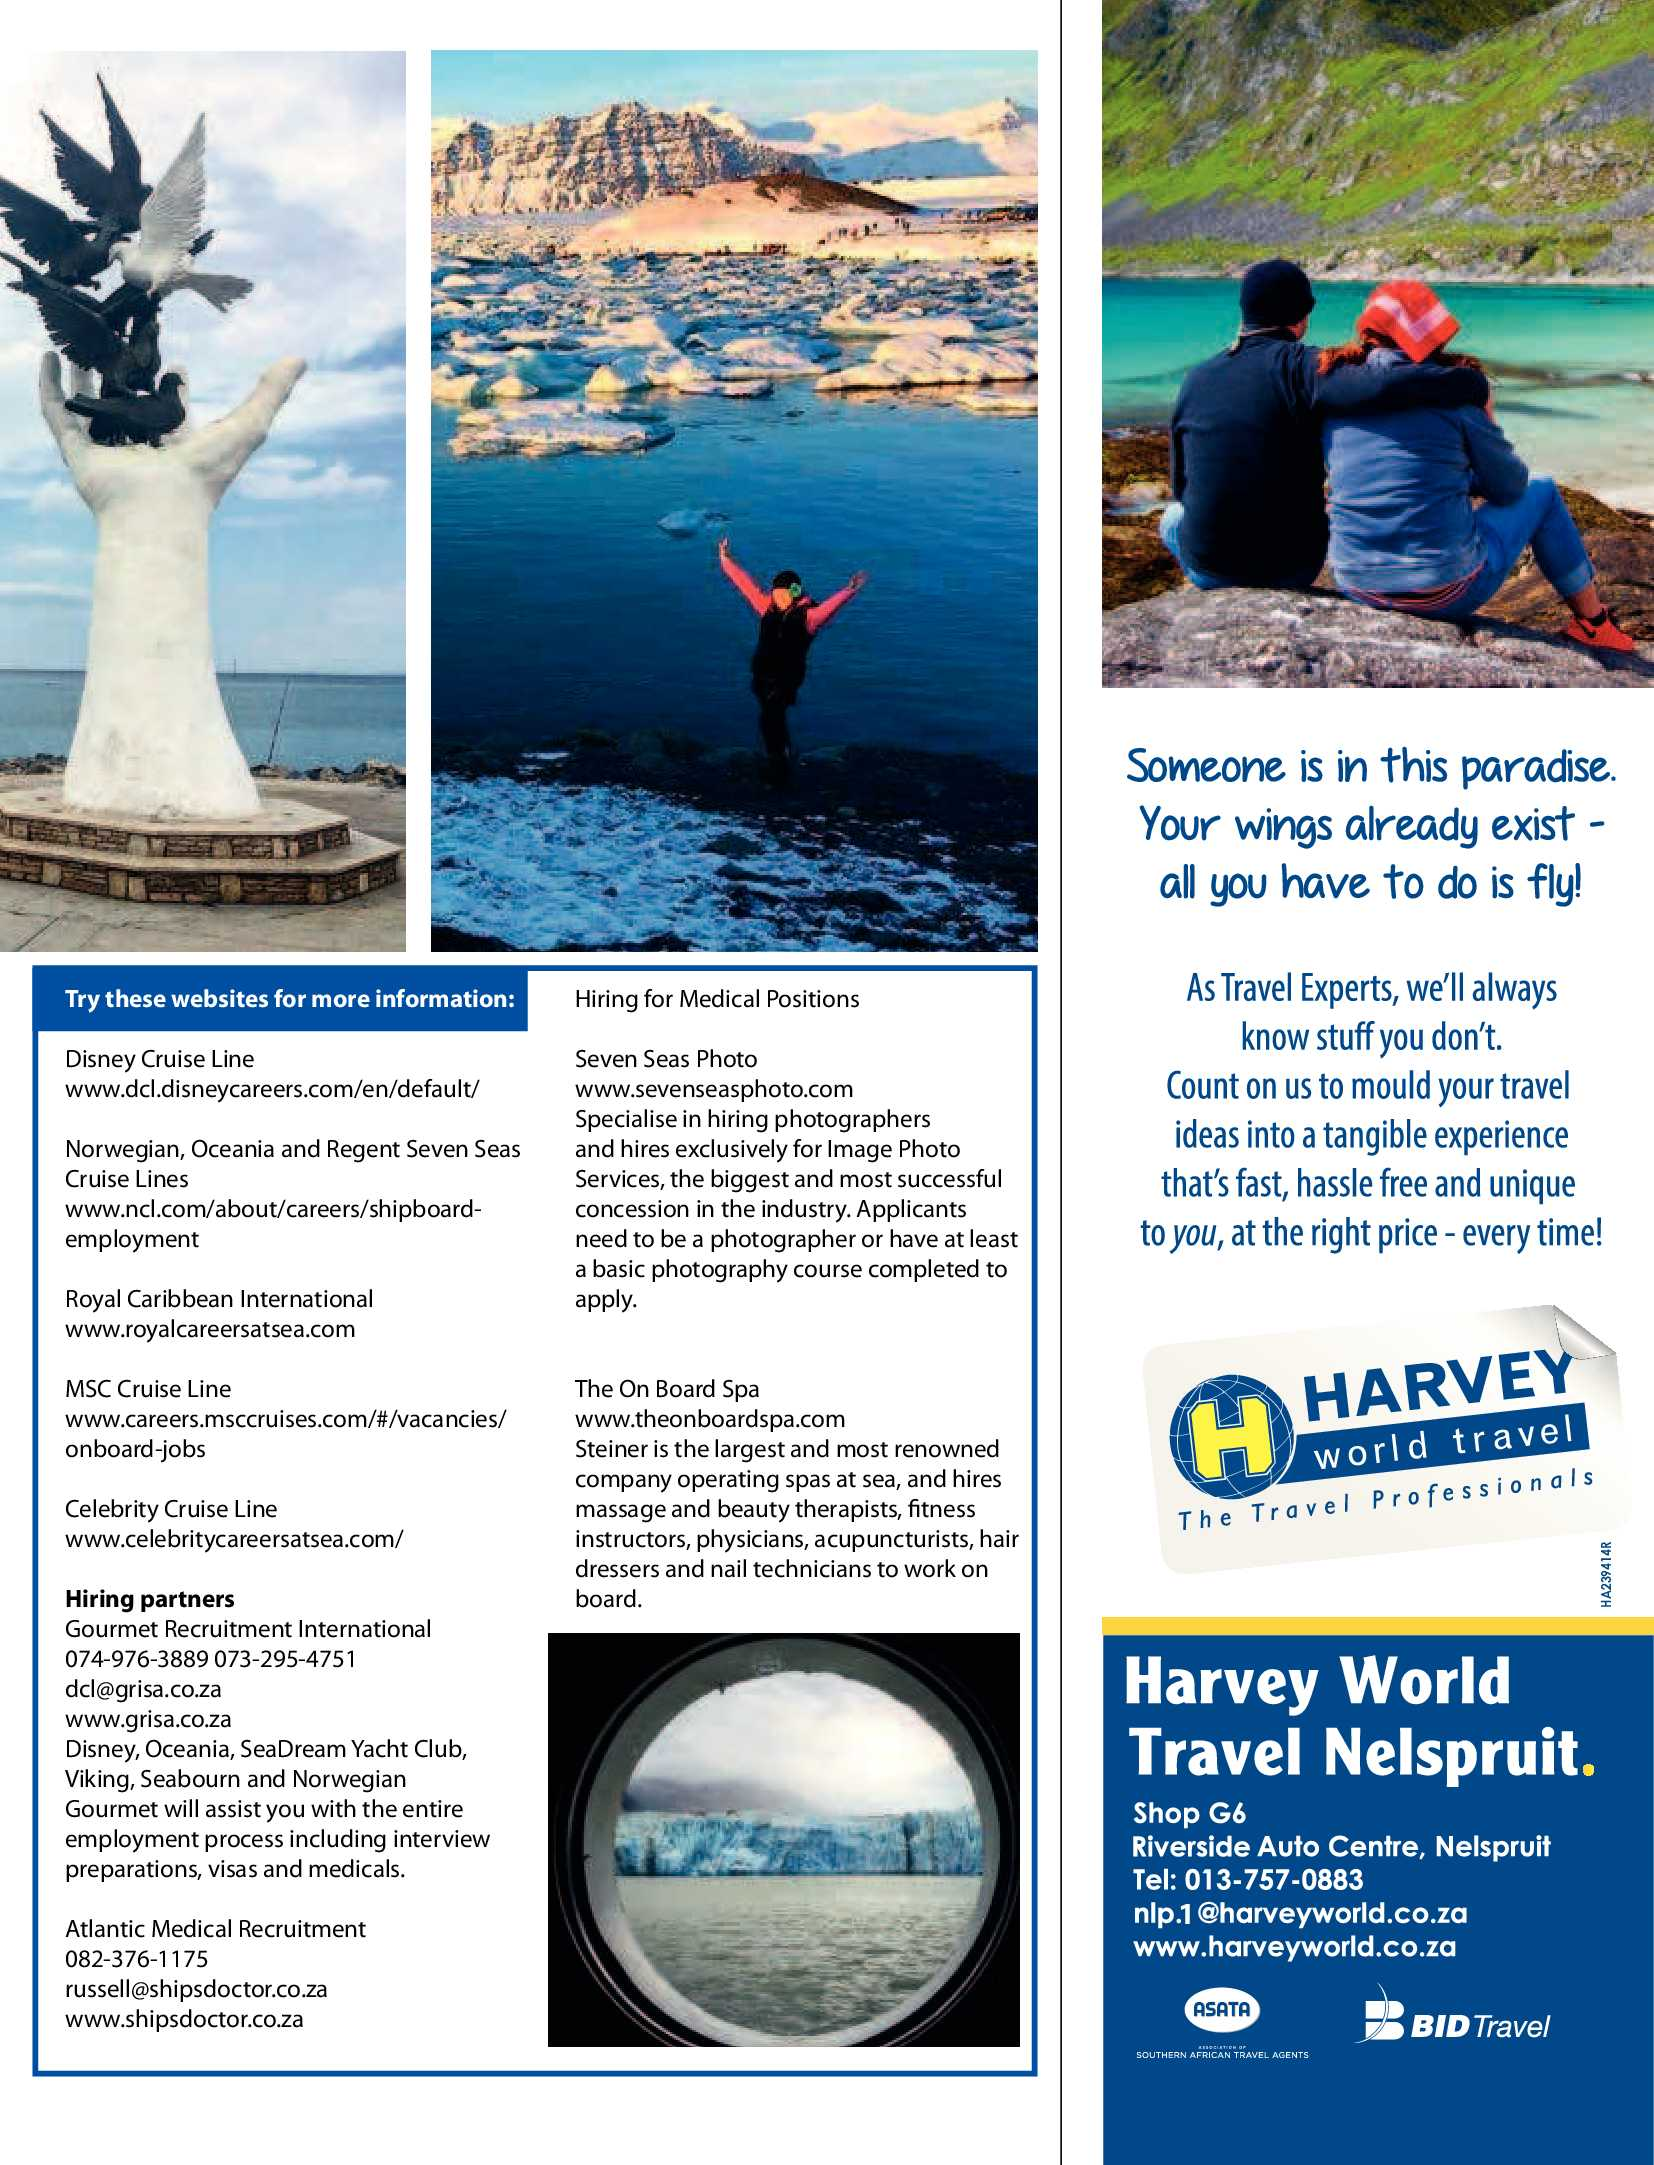 get-lowveld-april-2017-epapers-page-71